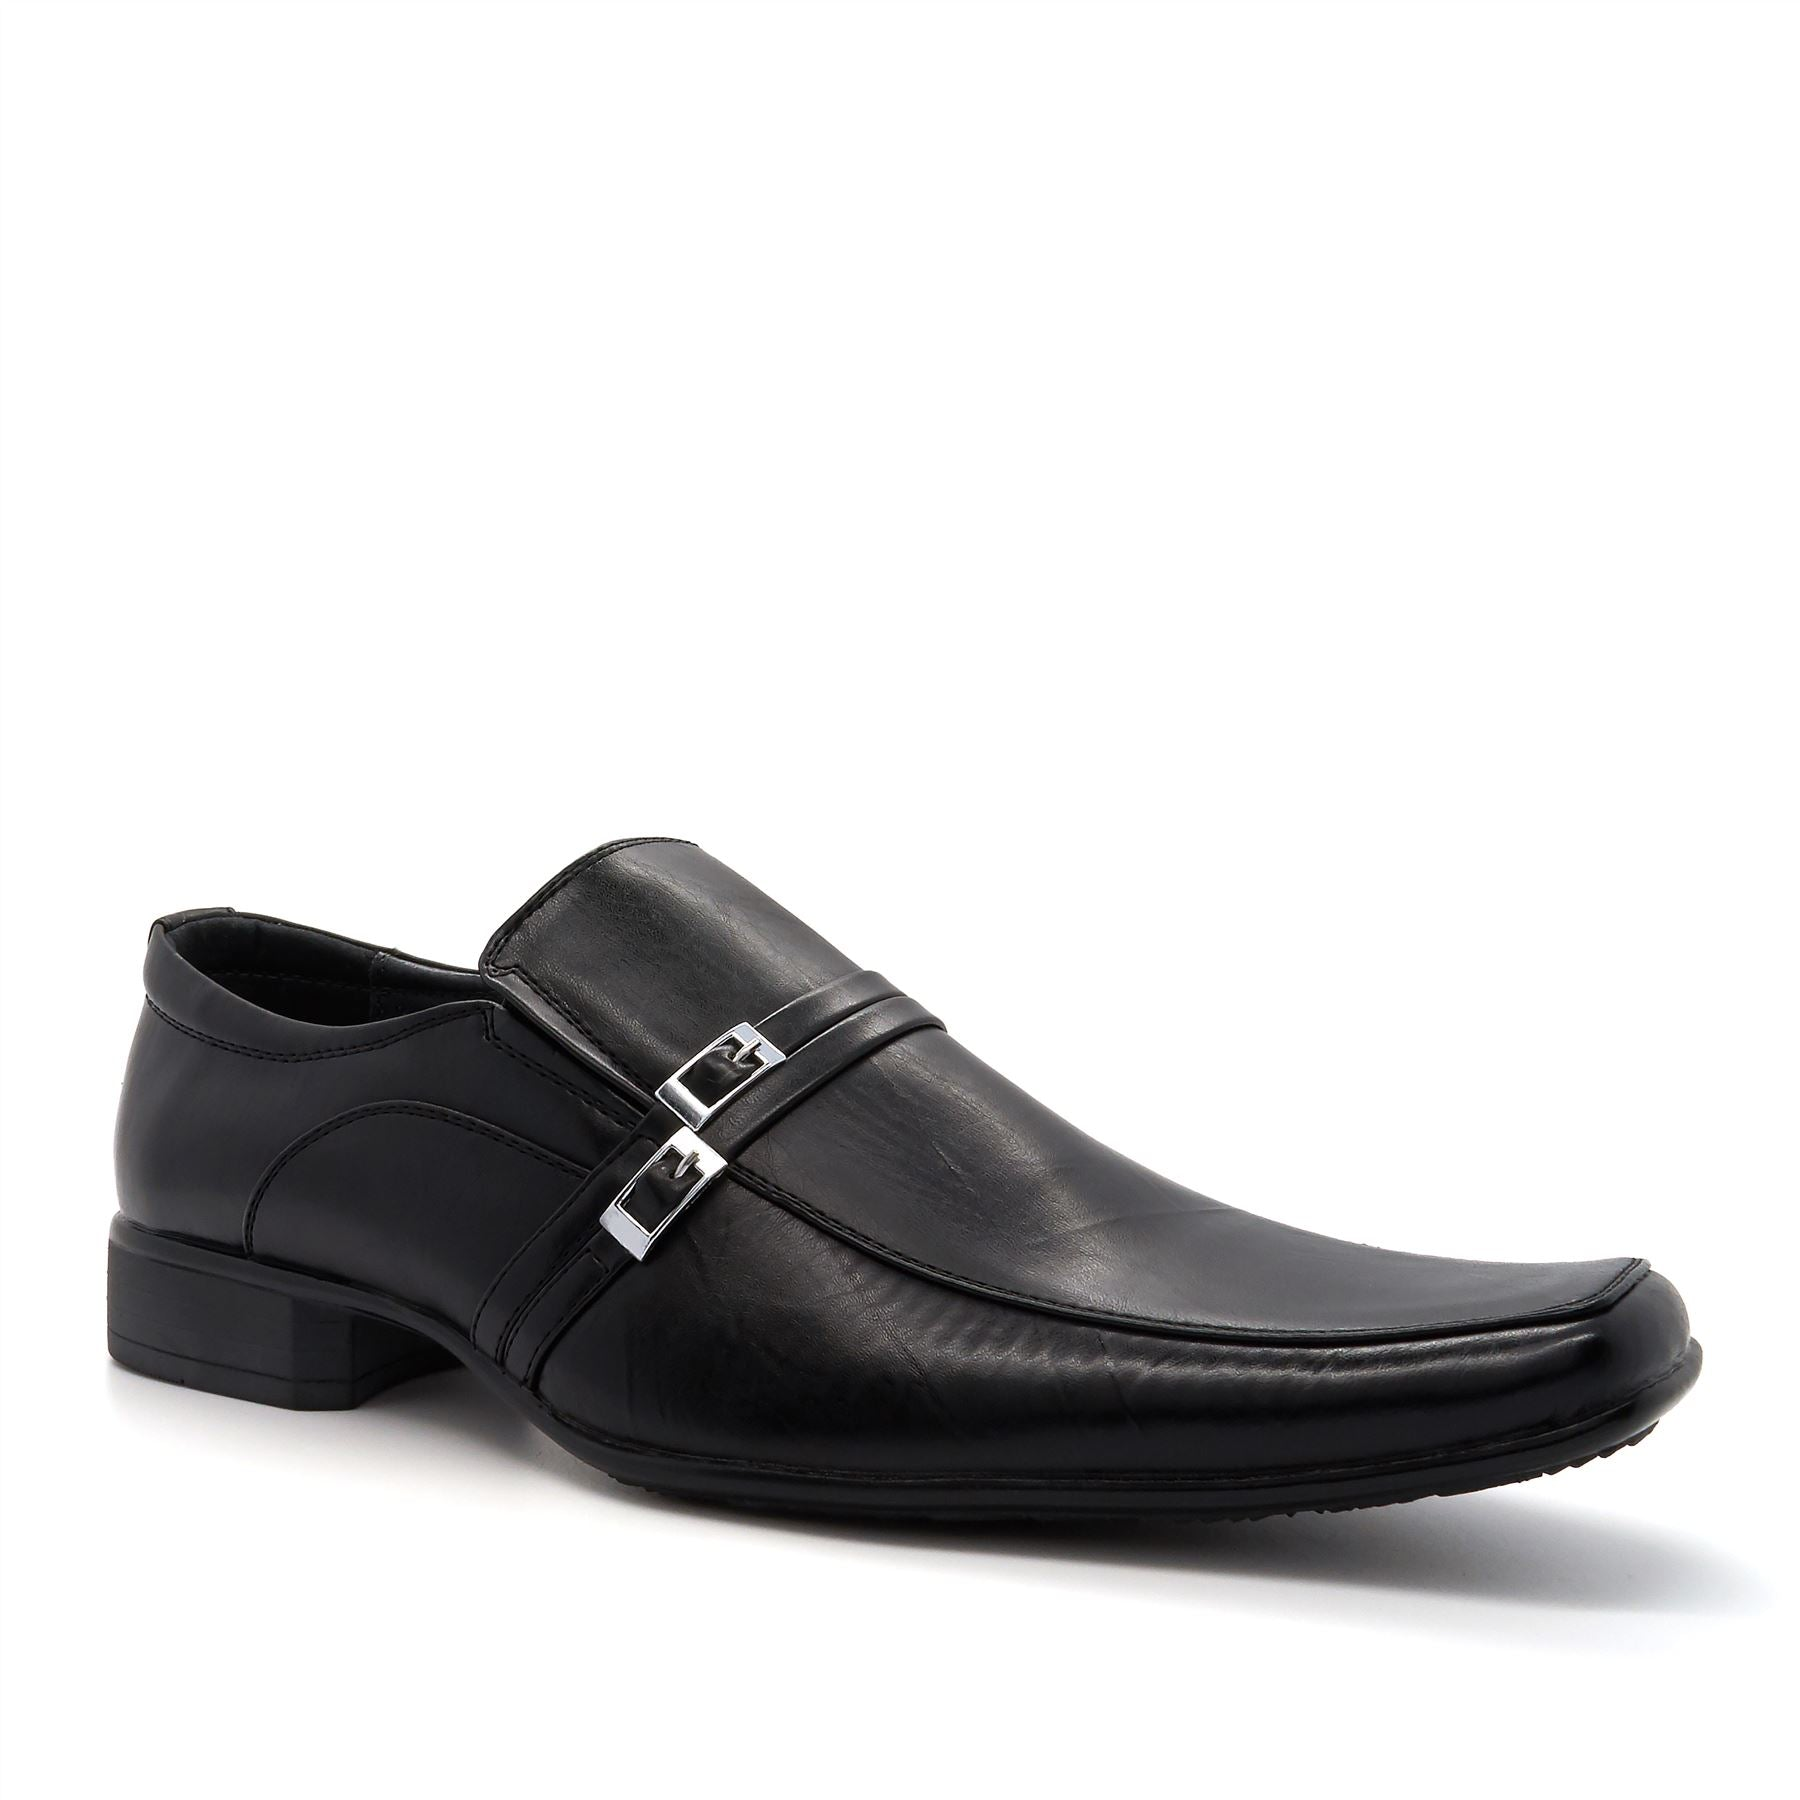 Black Pin Buckle Detail Slip On